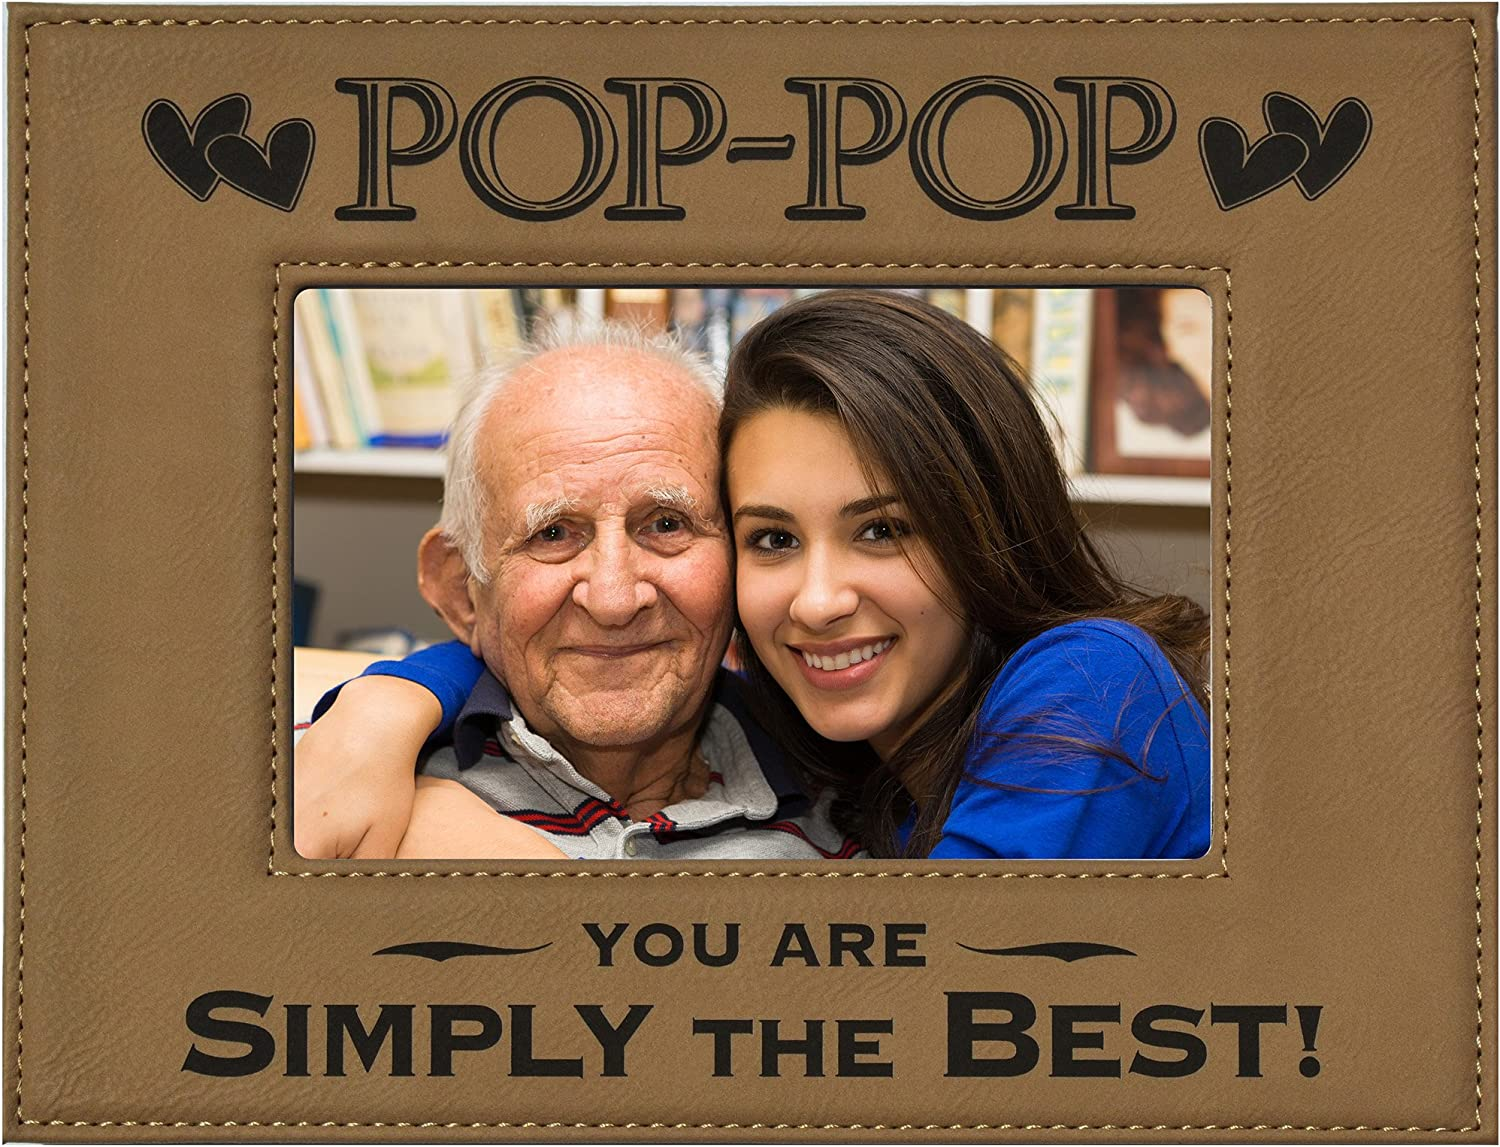 Amazon Com Gk Grand Personal Touch Premium Creations Pop Pop Gift Engraved Leatherette Picture Frame Pop Pop You Are Simply The Best Grandparents Day Gift Papa Birthday Gift Grandpa 4x6 Beige